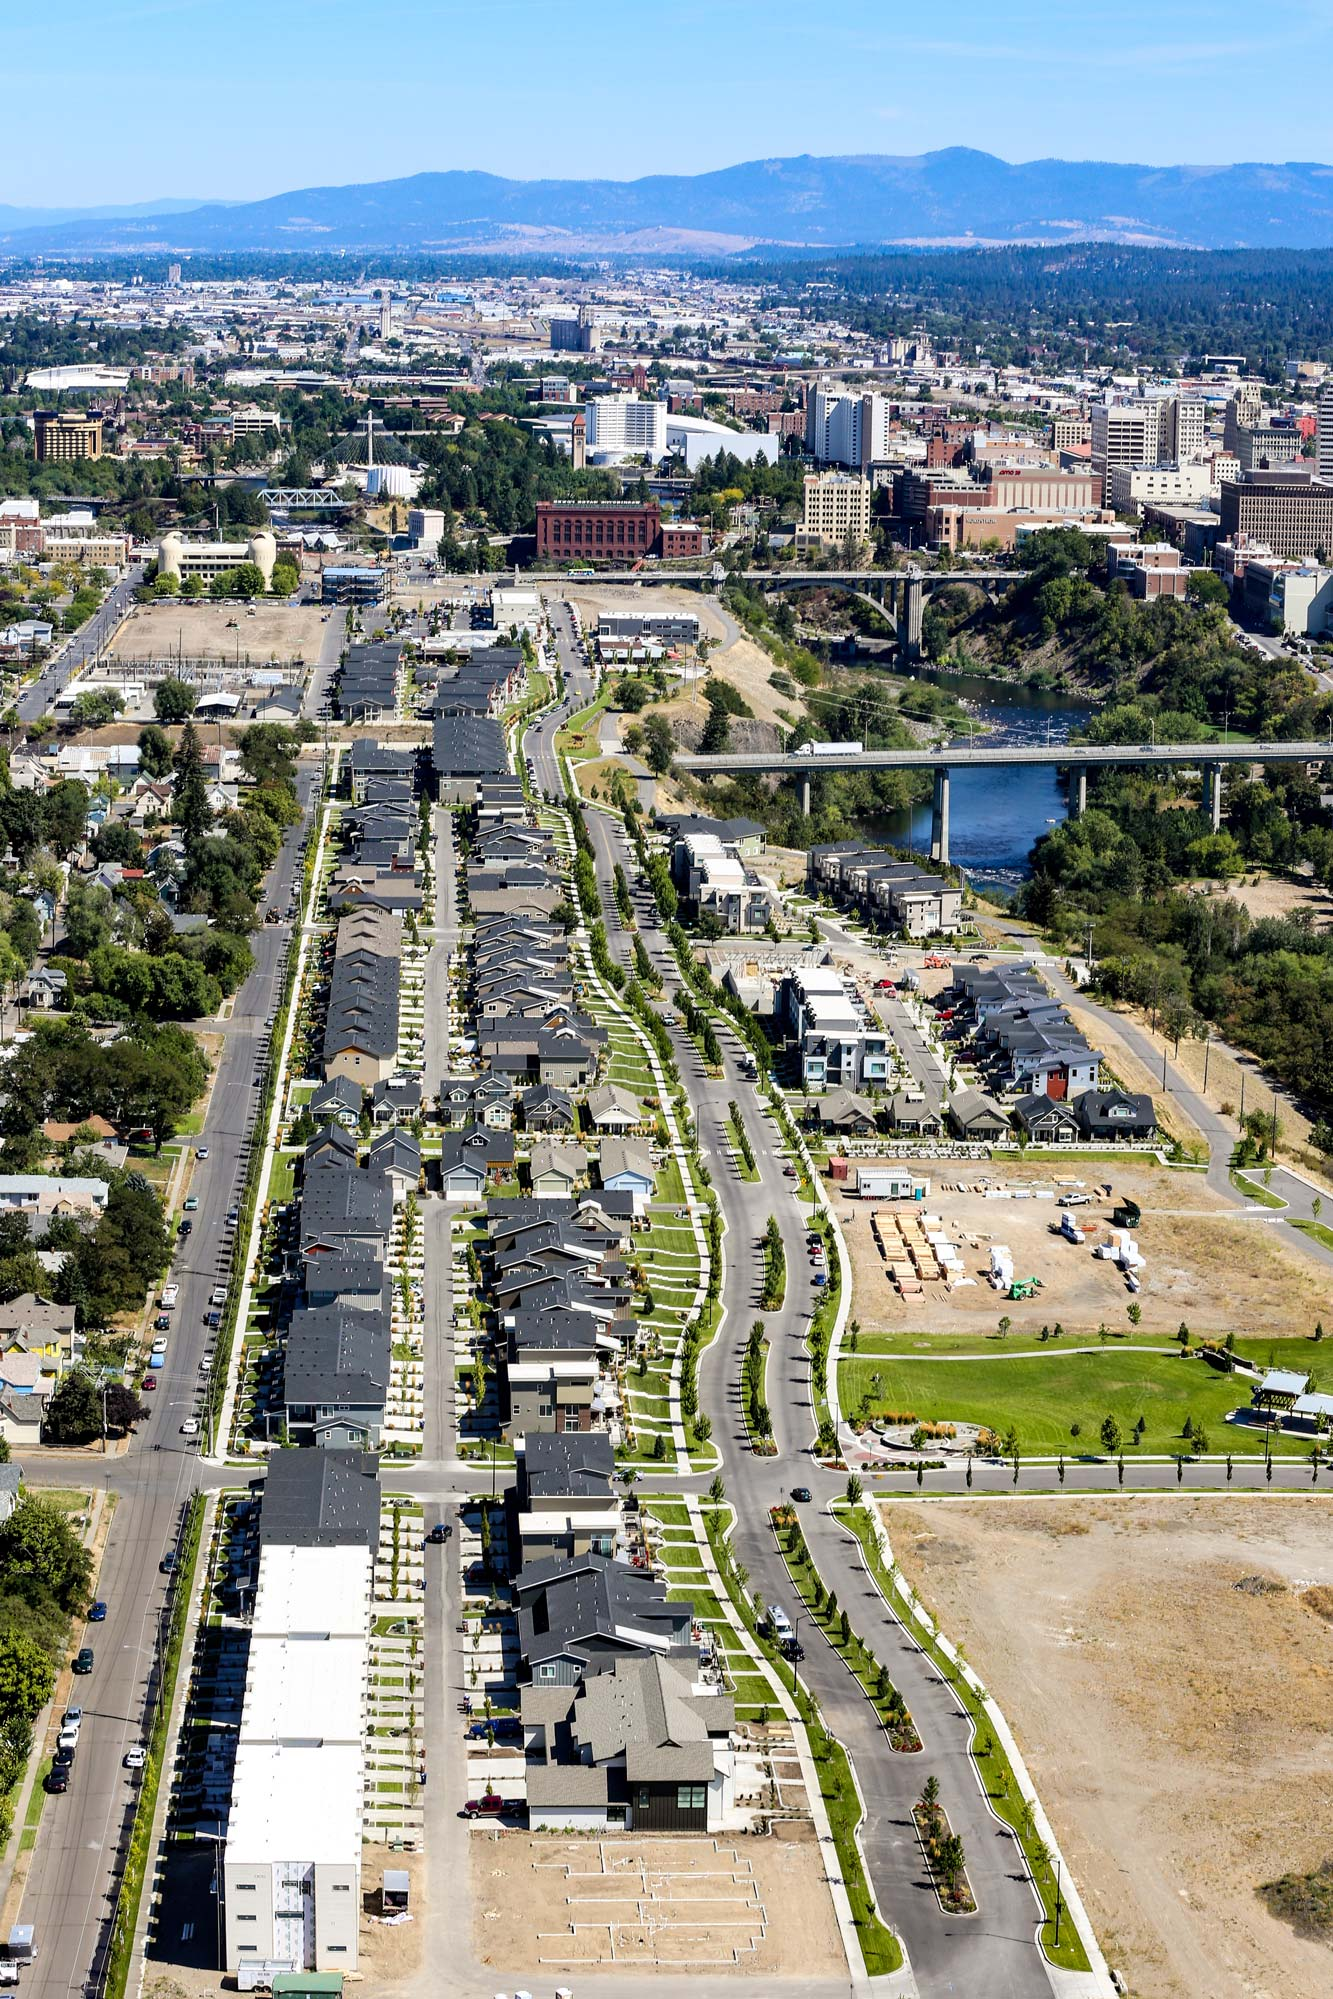 Kendall Yards Aerial Image, Spokane Downtown